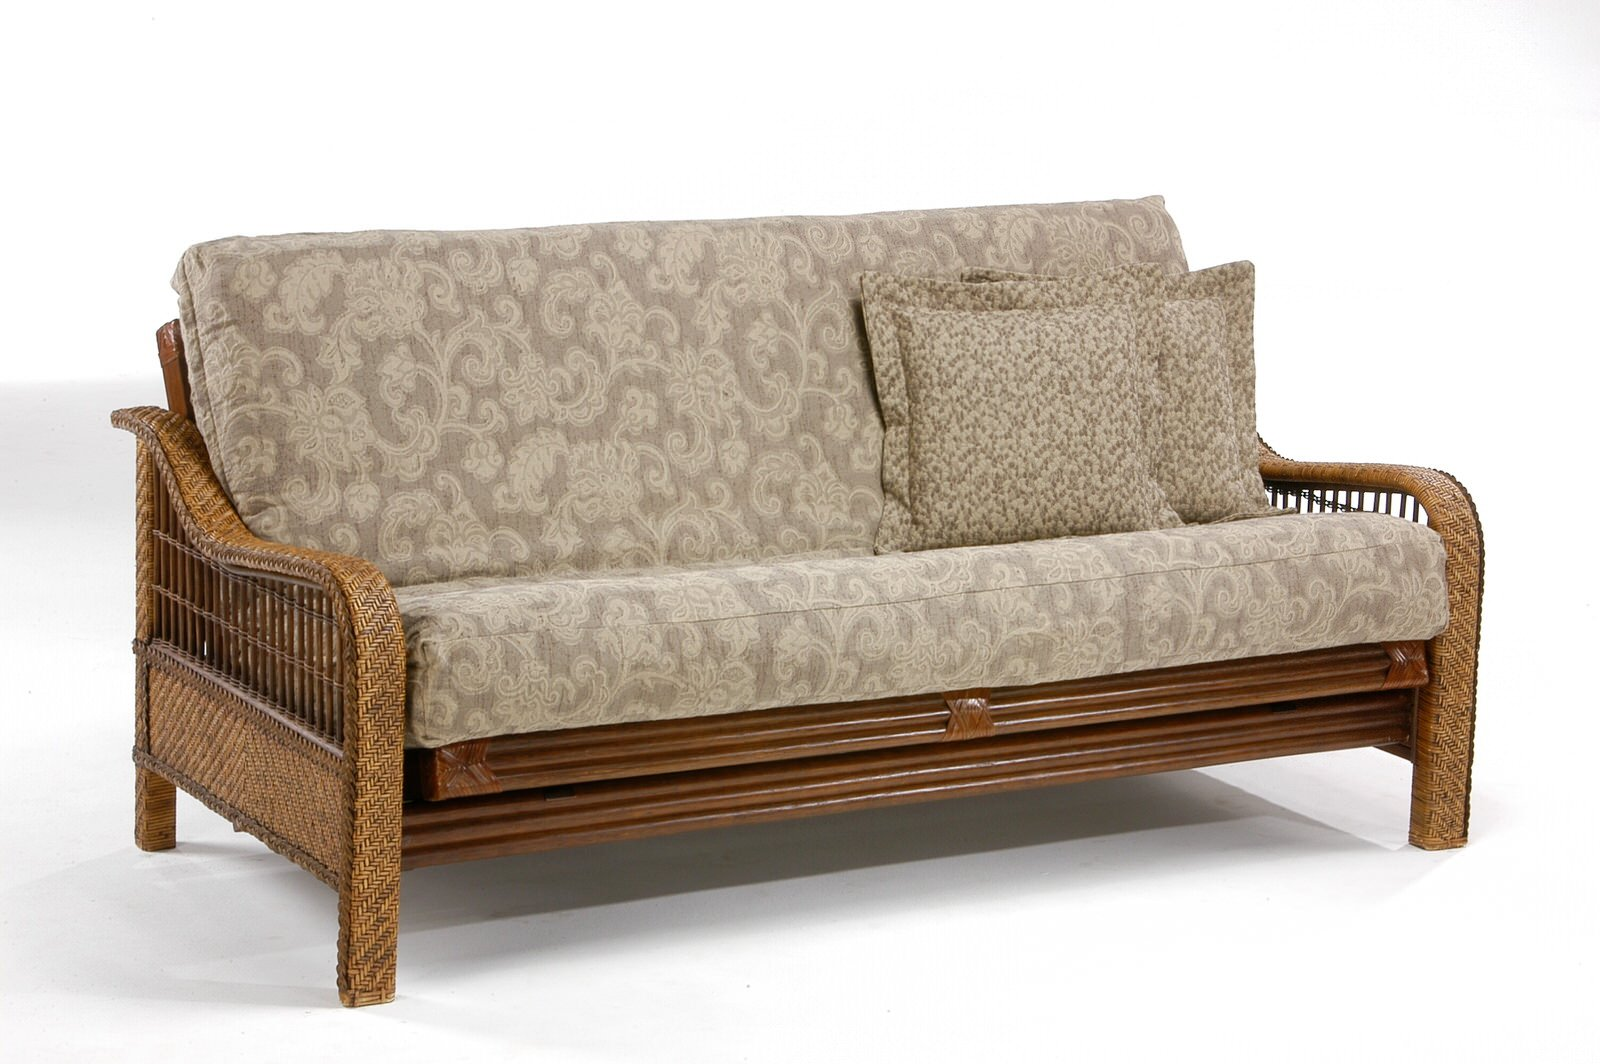 Wicker futon roselawnlutheran for Wicker futon sofa bed